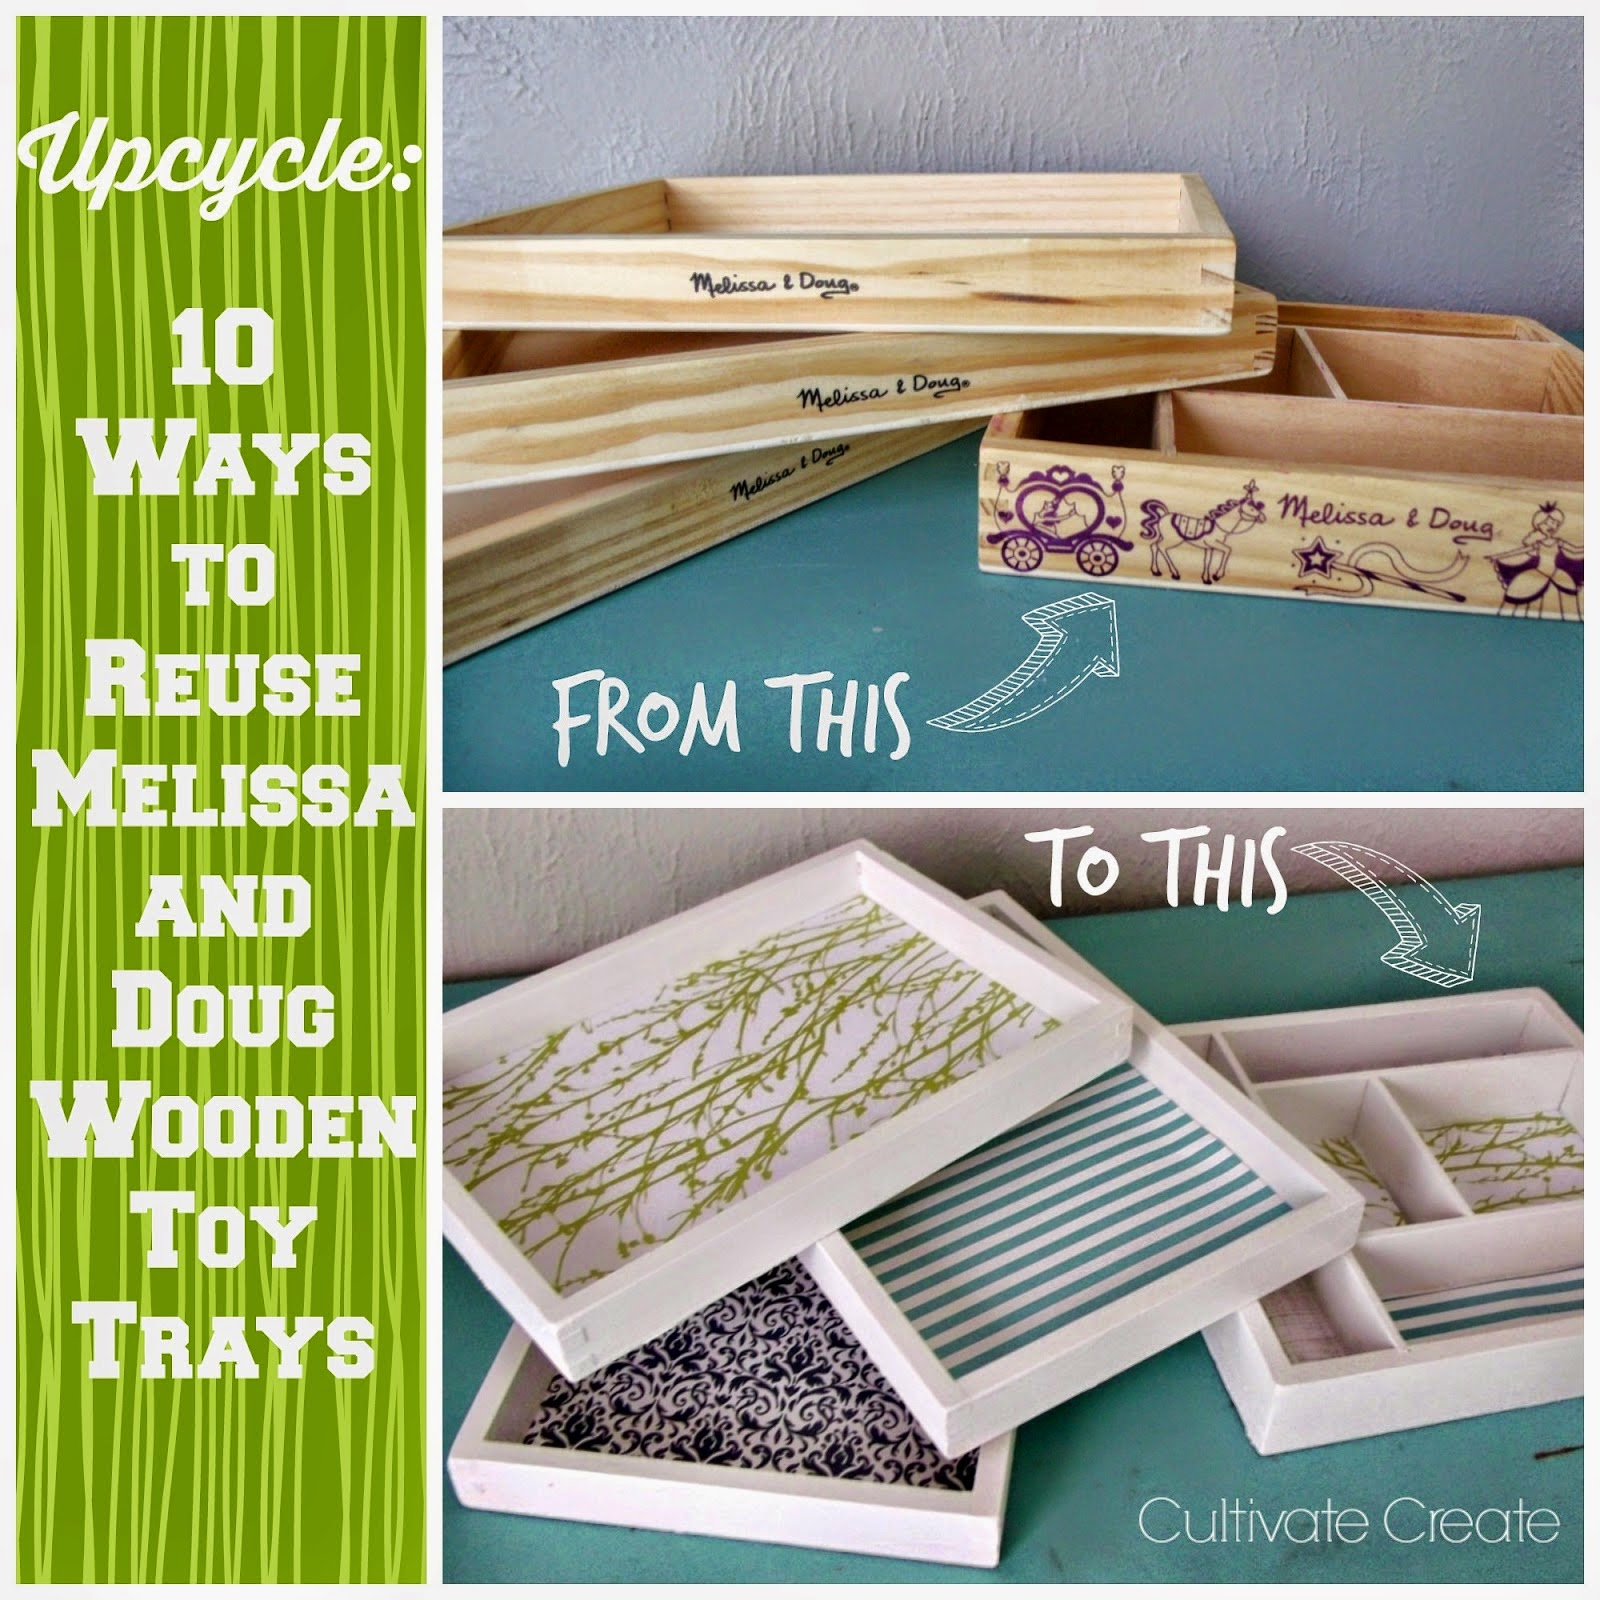 Upcycle: Wooden Trays